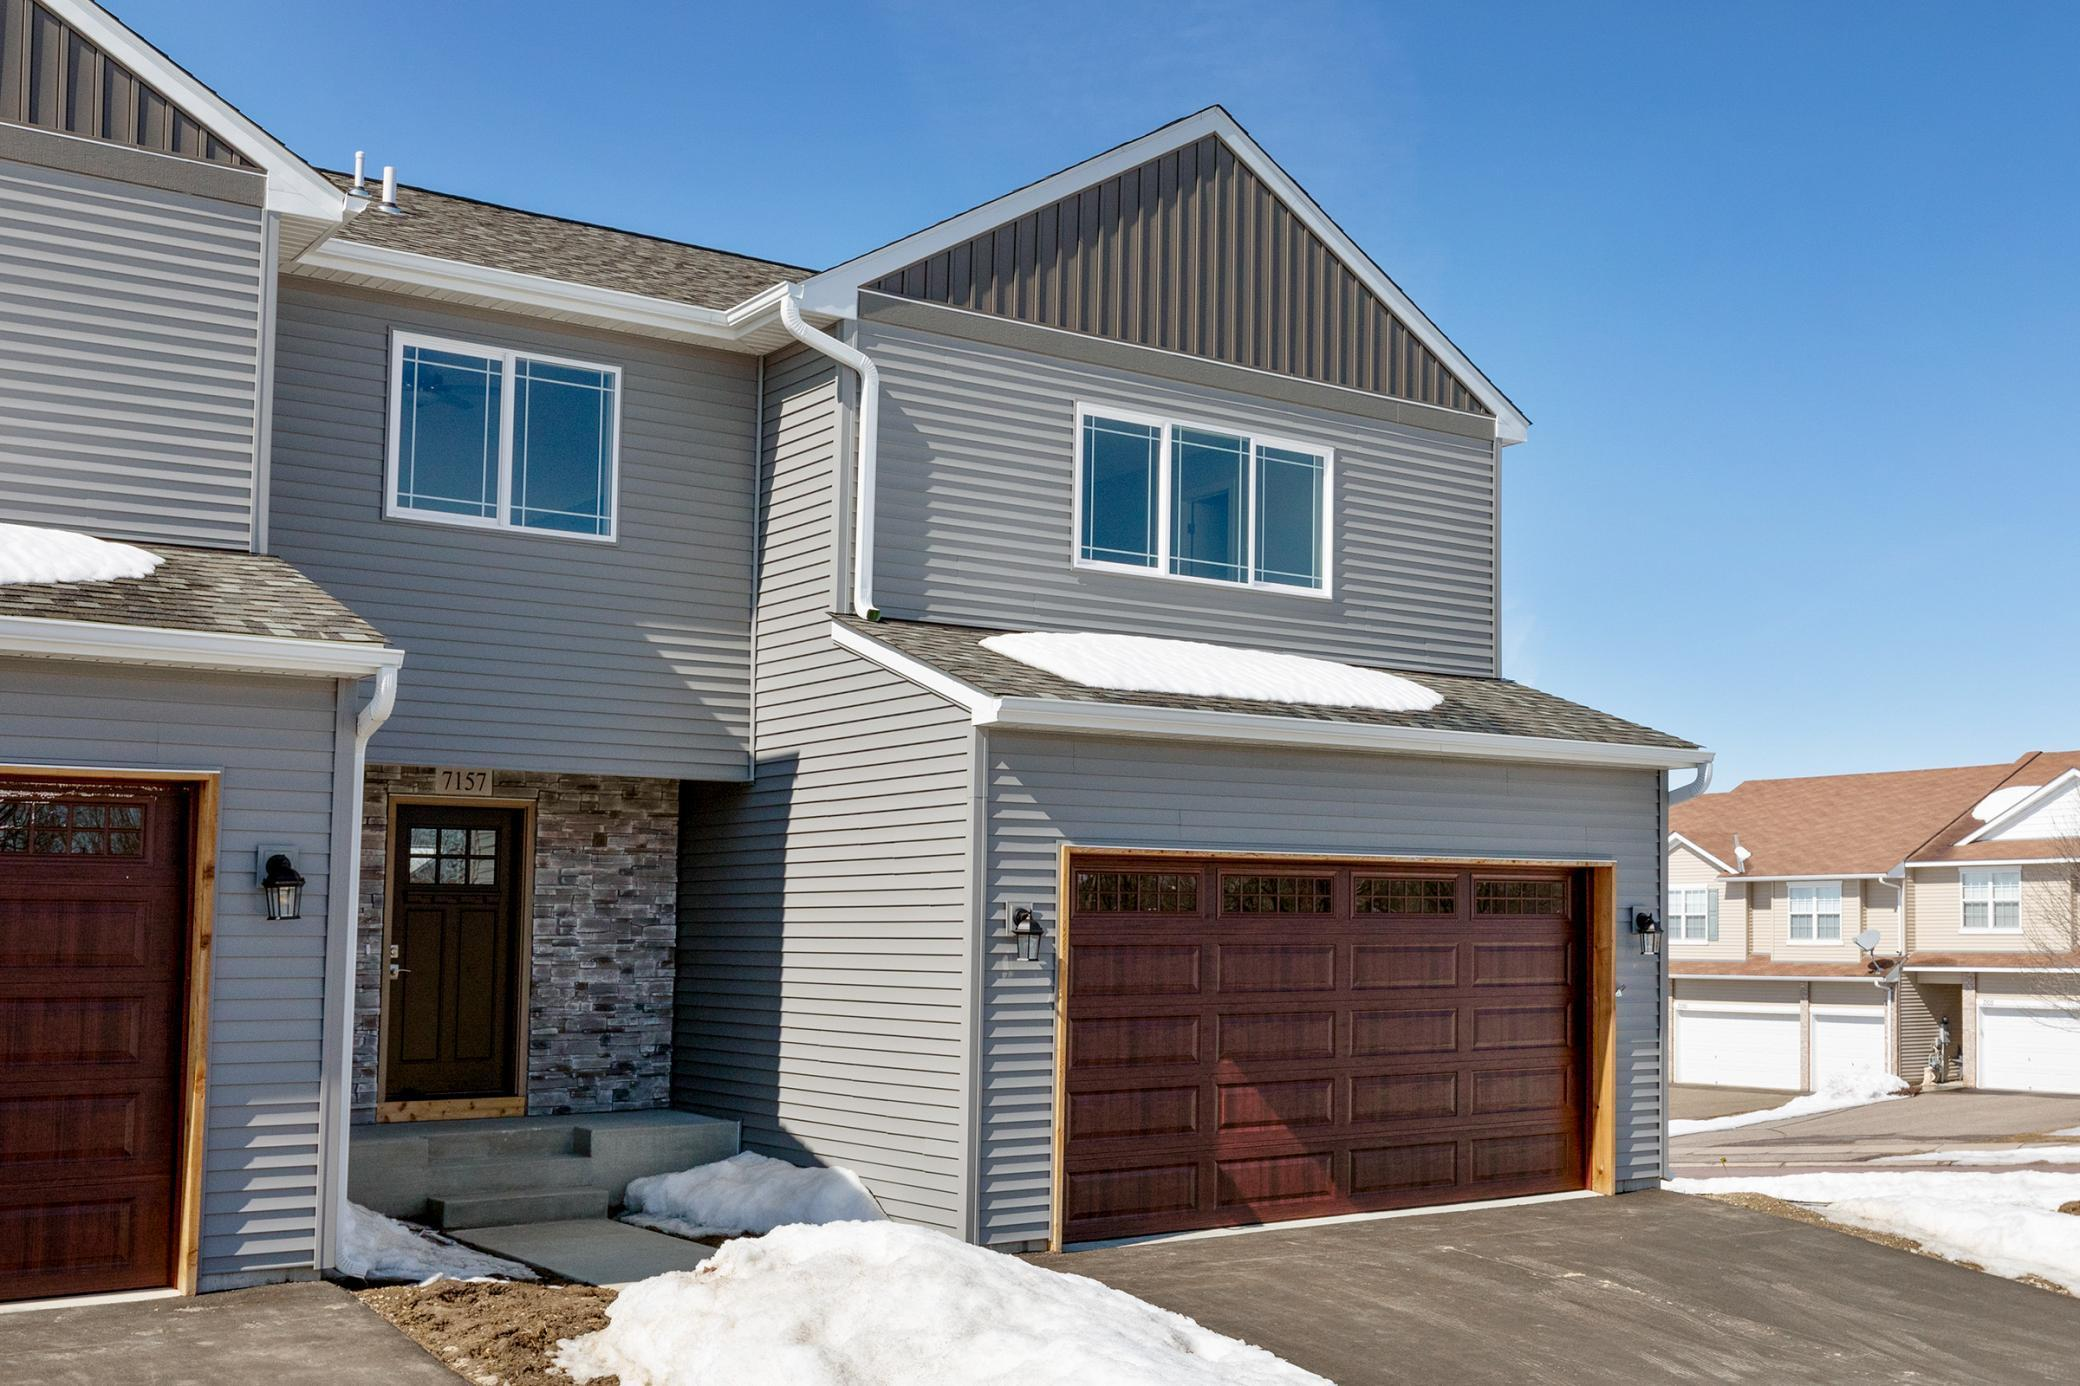 7138 Kilkenny Way Property Photo - Greenfield, MN real estate listing